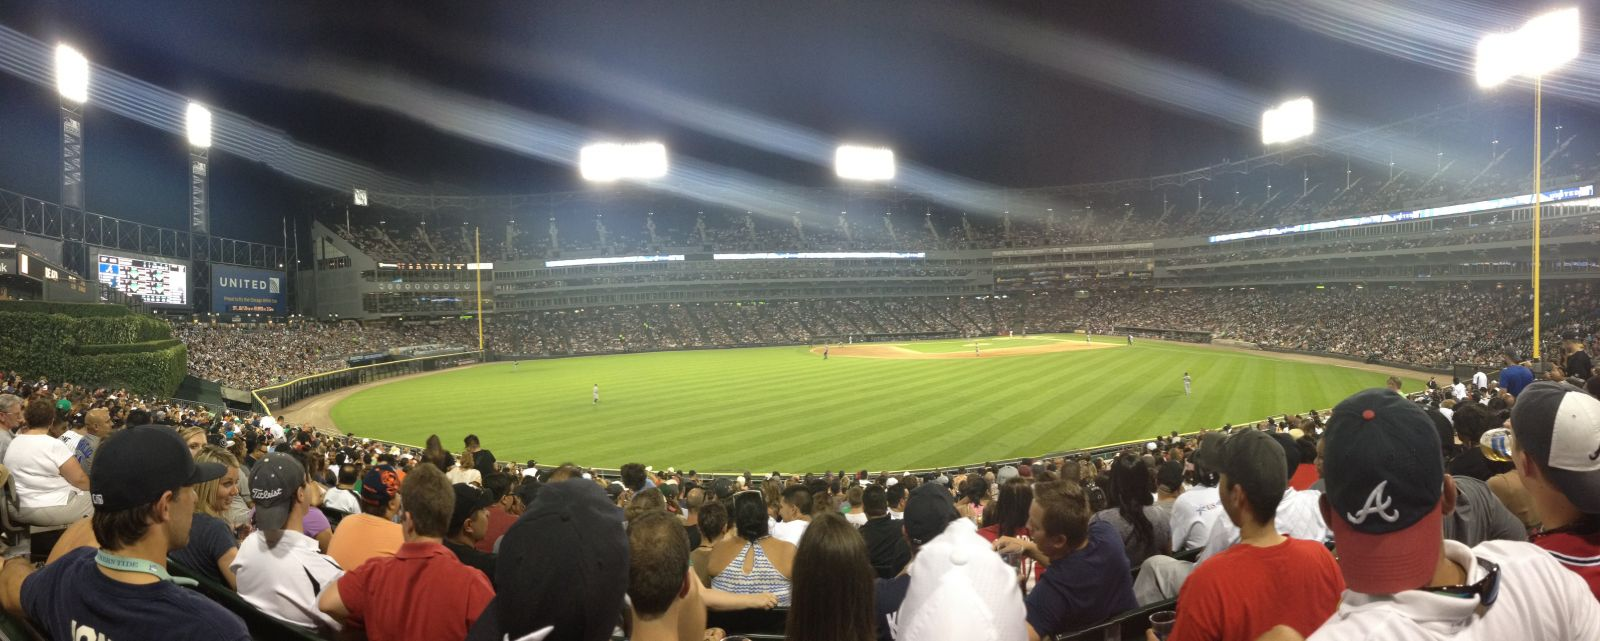 Seat View for Guaranteed Rate Field Section 161, Row 21, Seat 8